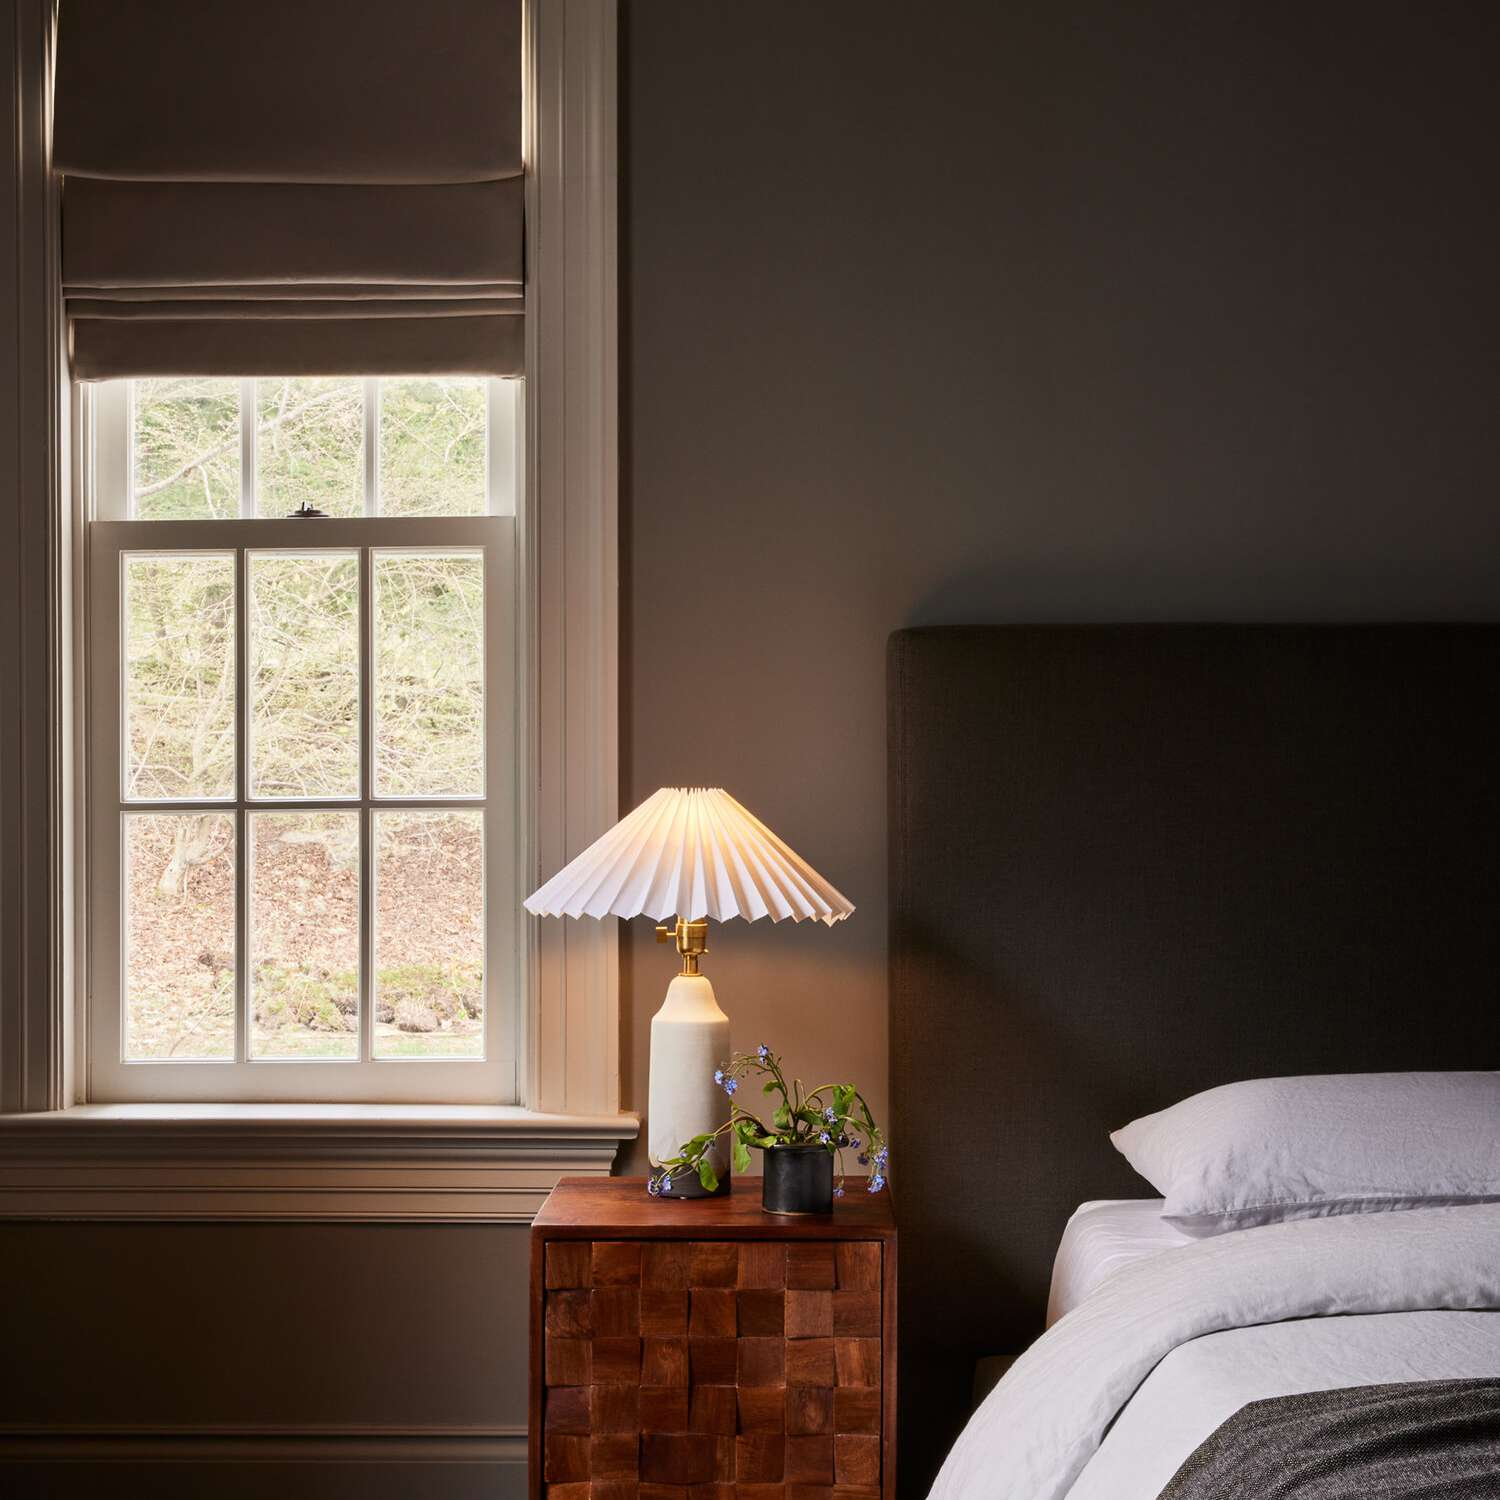 A low-profile bed next to a small nightstand